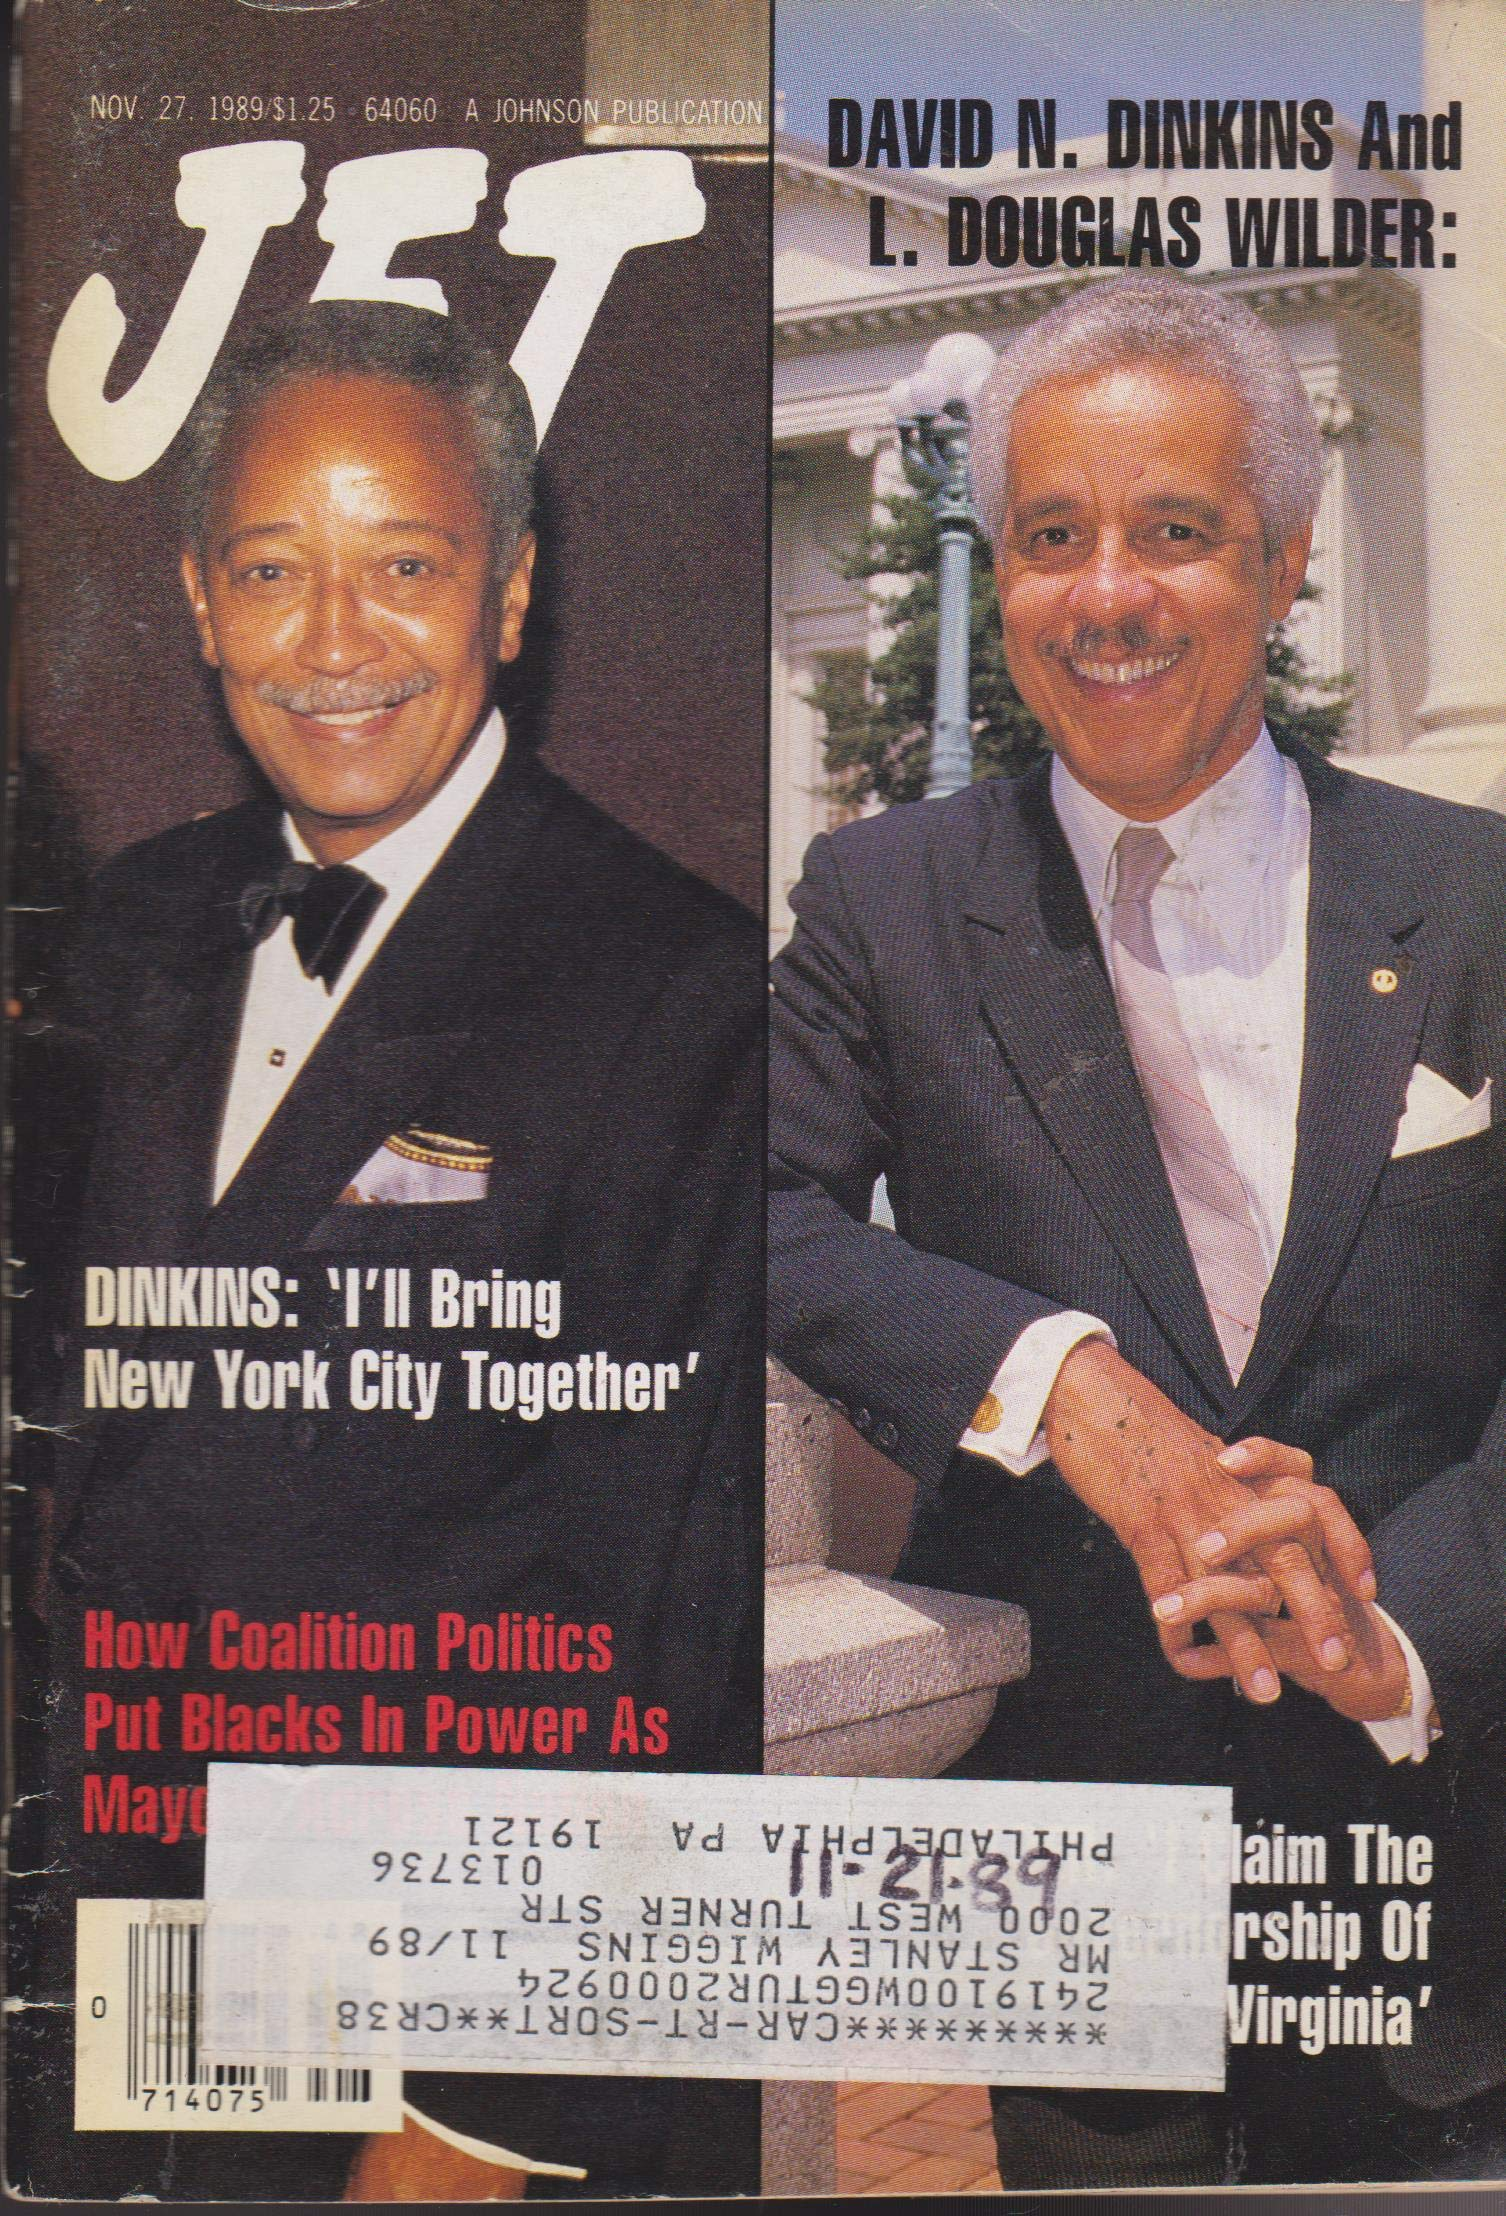 jet magazine november 27 1989 david dinkins douglas wilder various amazon com books jet magazine november 27 1989 david